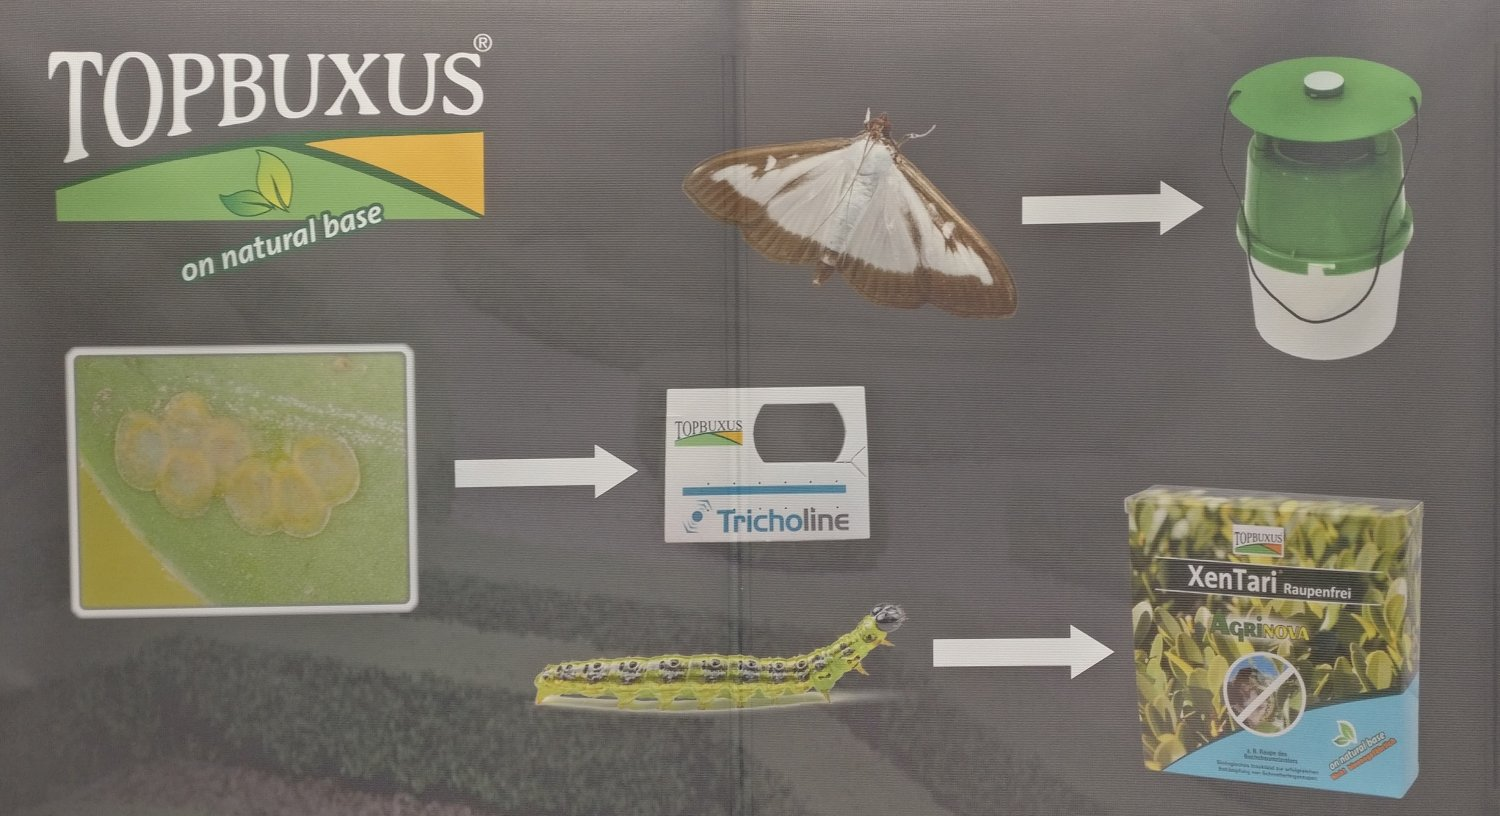 TopBuxus Garden Press Event banner for Box Tree Moth & Caterpillar products